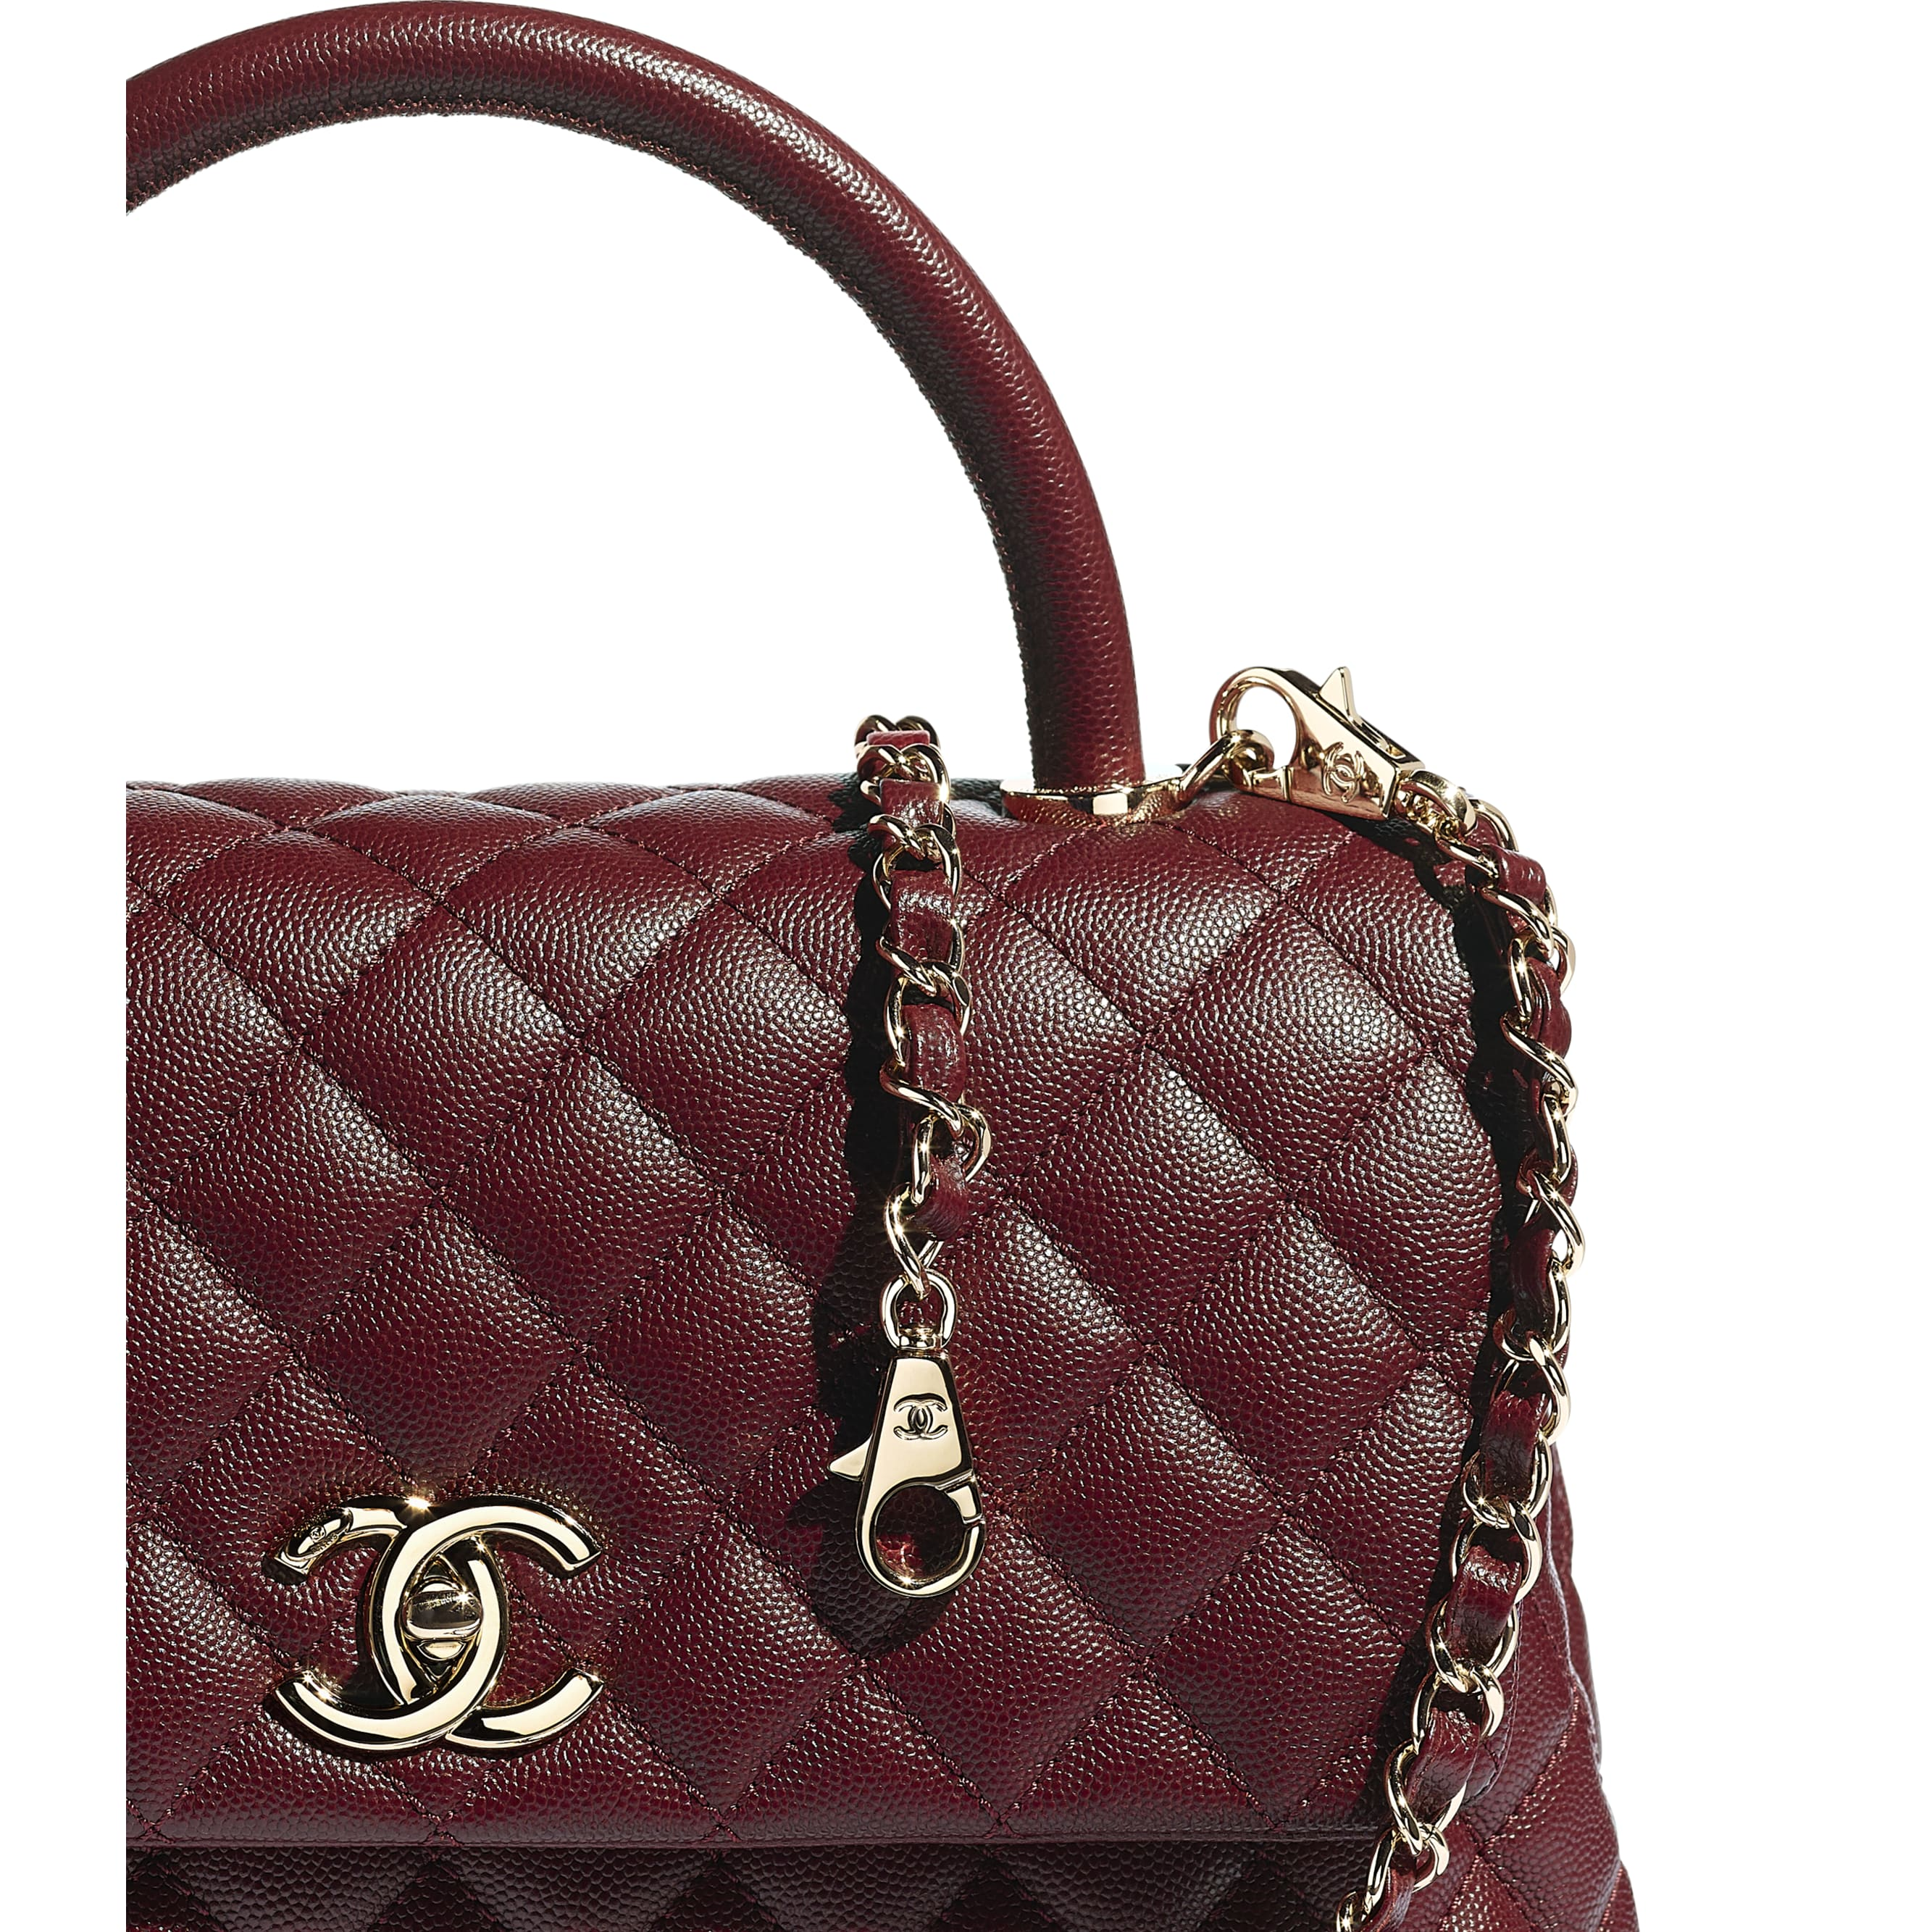 Large Flap Bag With Top Handle - Burgundy - Grained Calfskin & Gold-Tone Metal - CHANEL - Extra view - see standard sized version